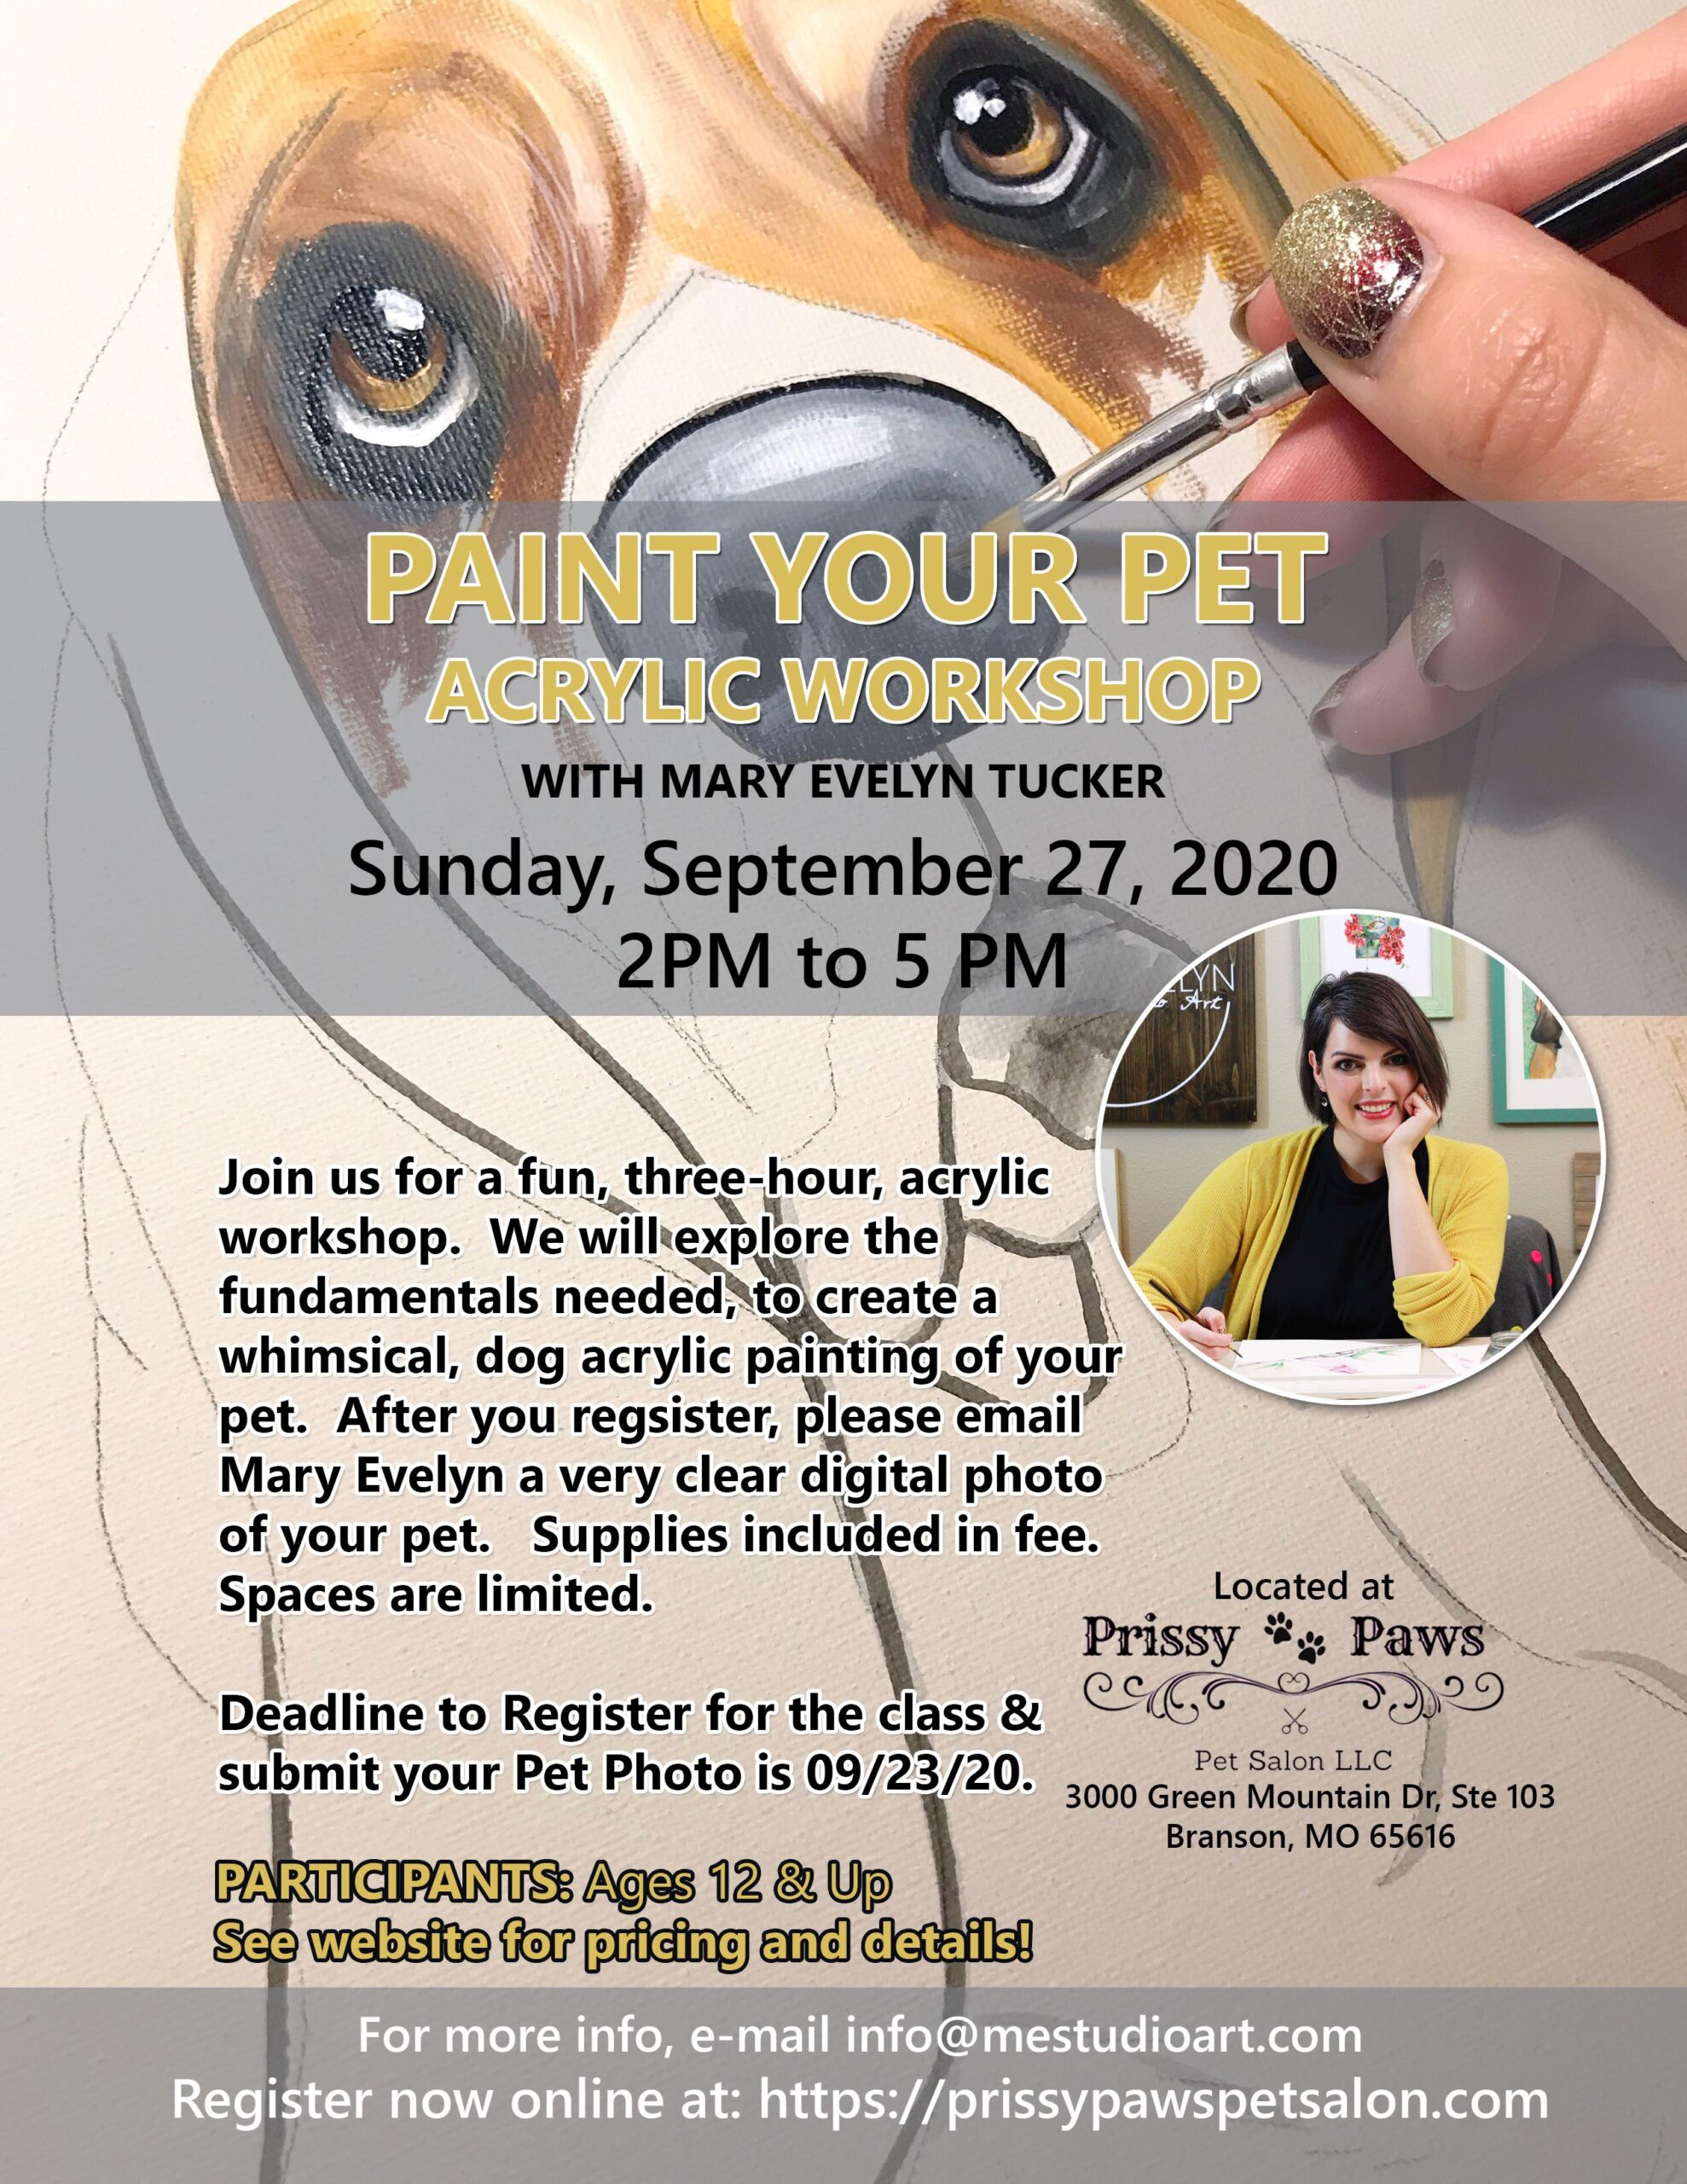 paint-your-pet-acrylic-workshop